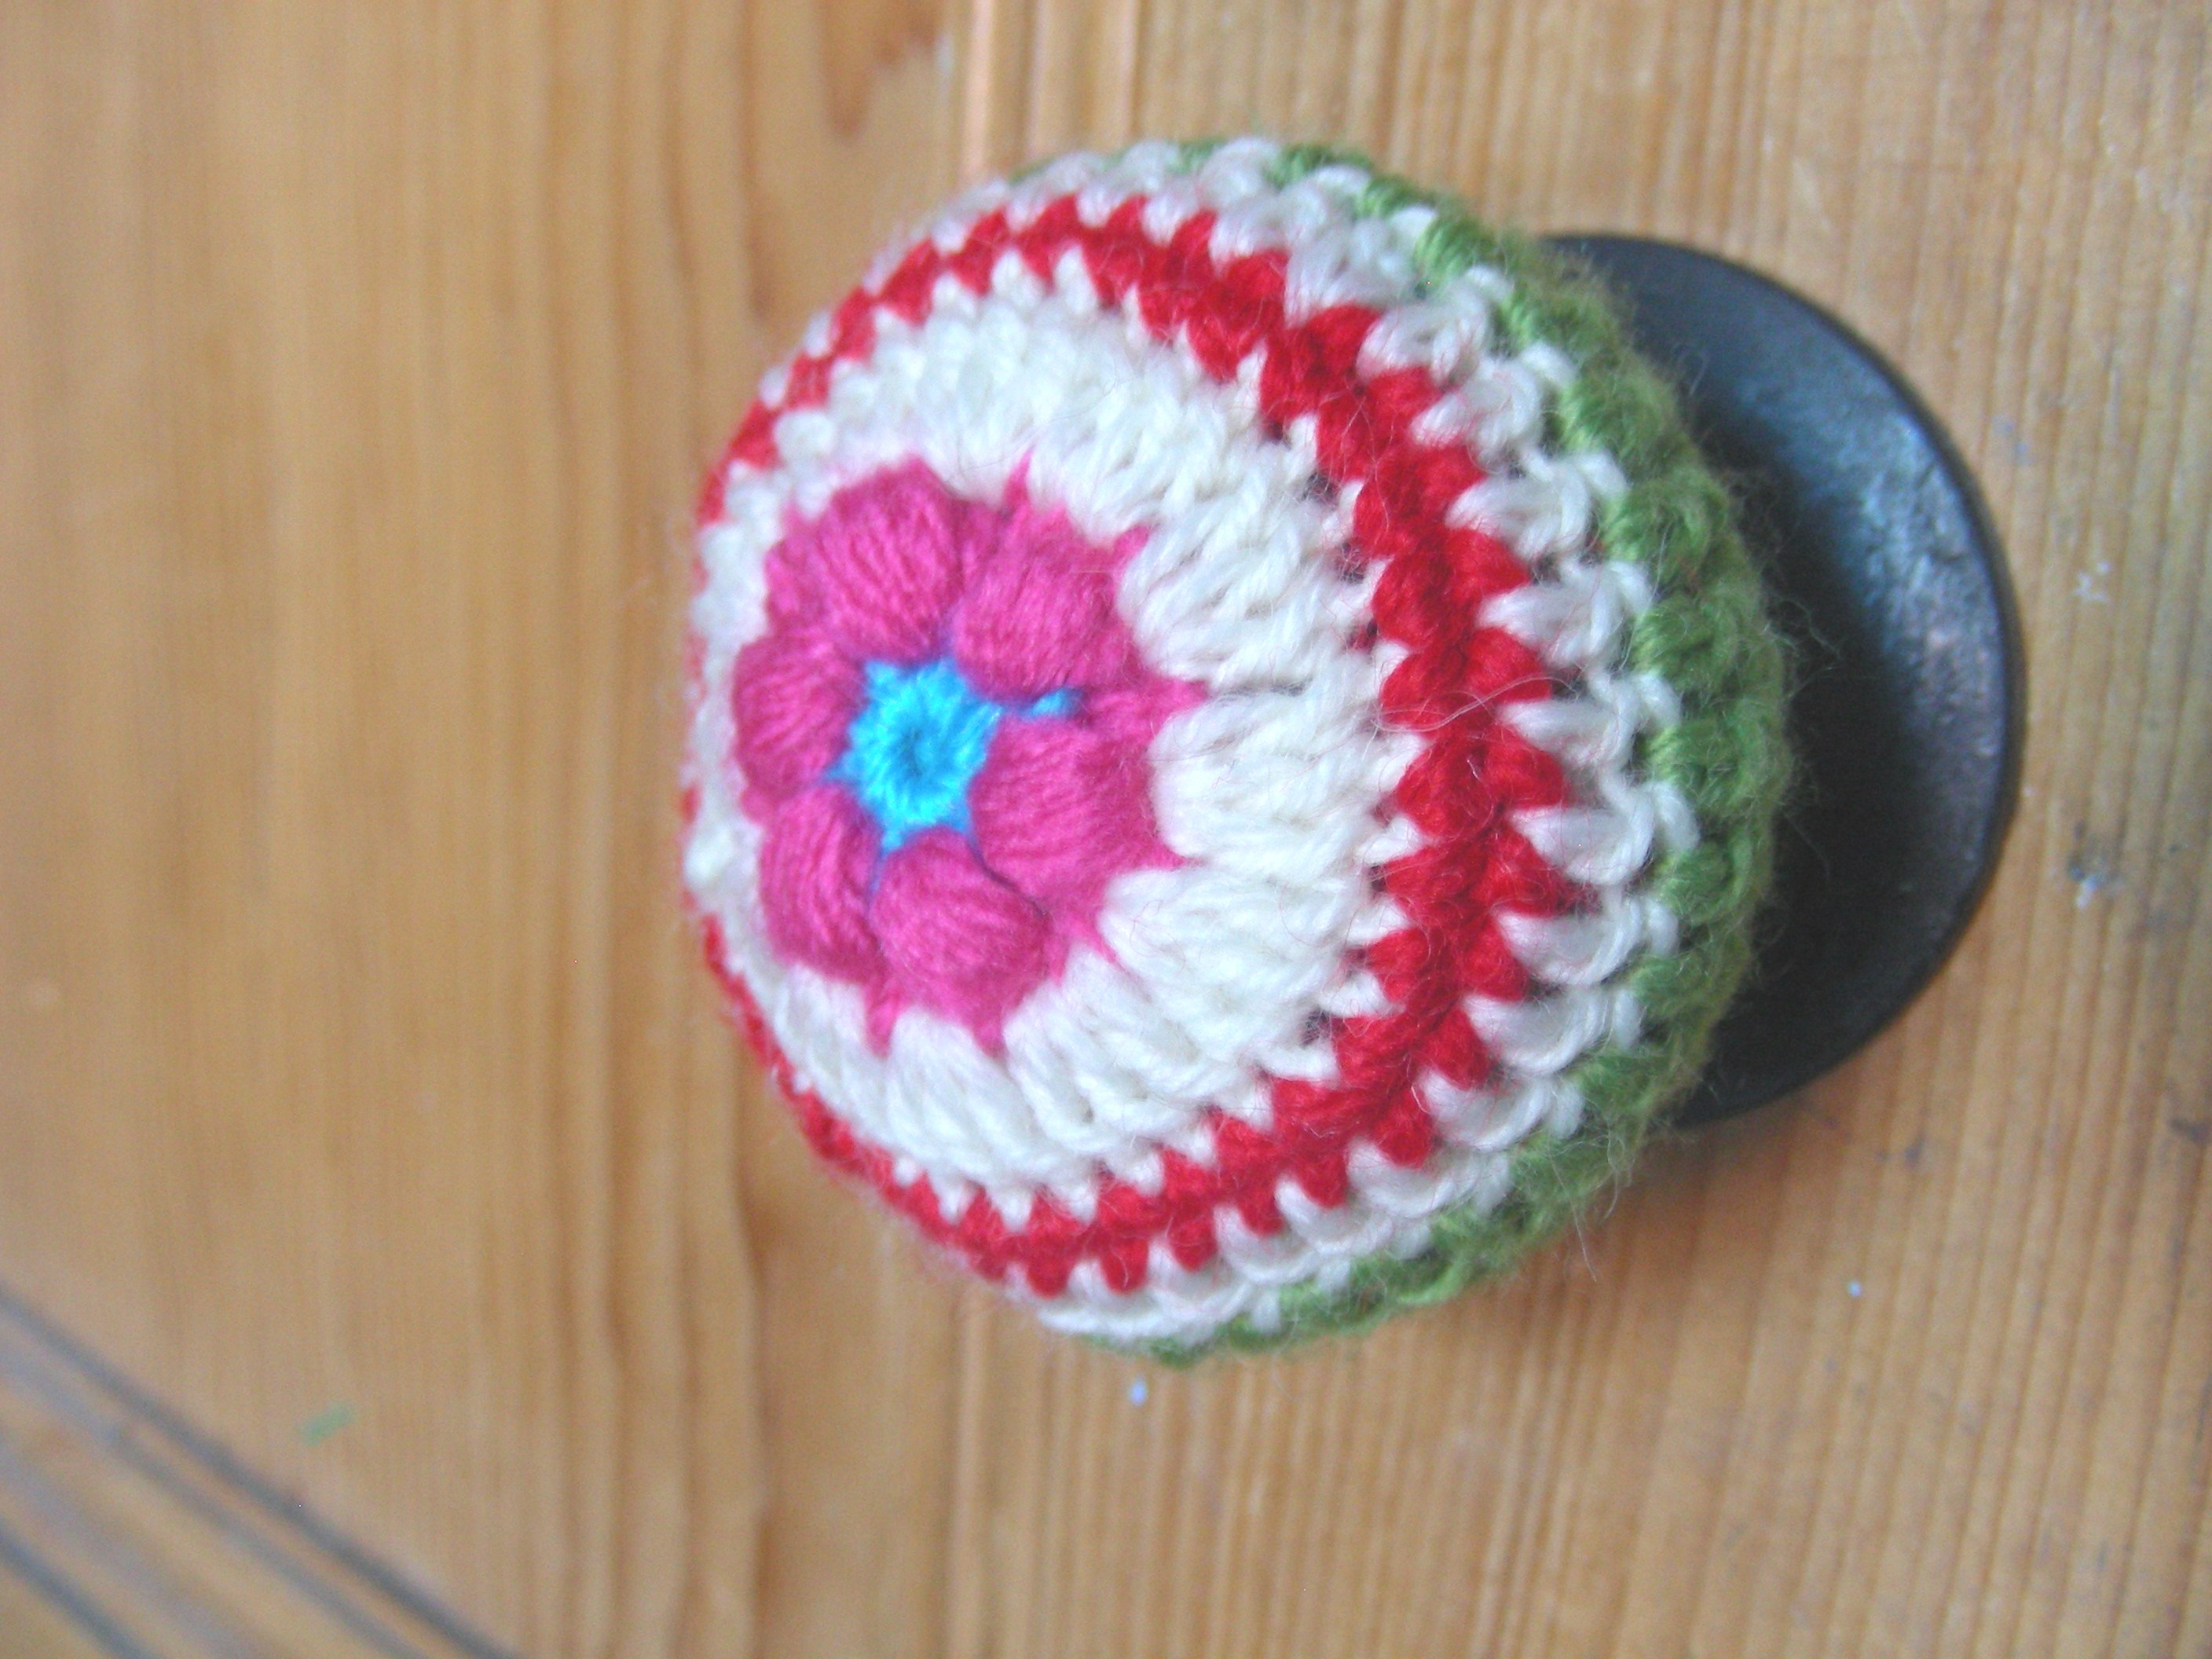 Roman Sock Transforming Knobs From Drab To Fab Door Knobs That Is